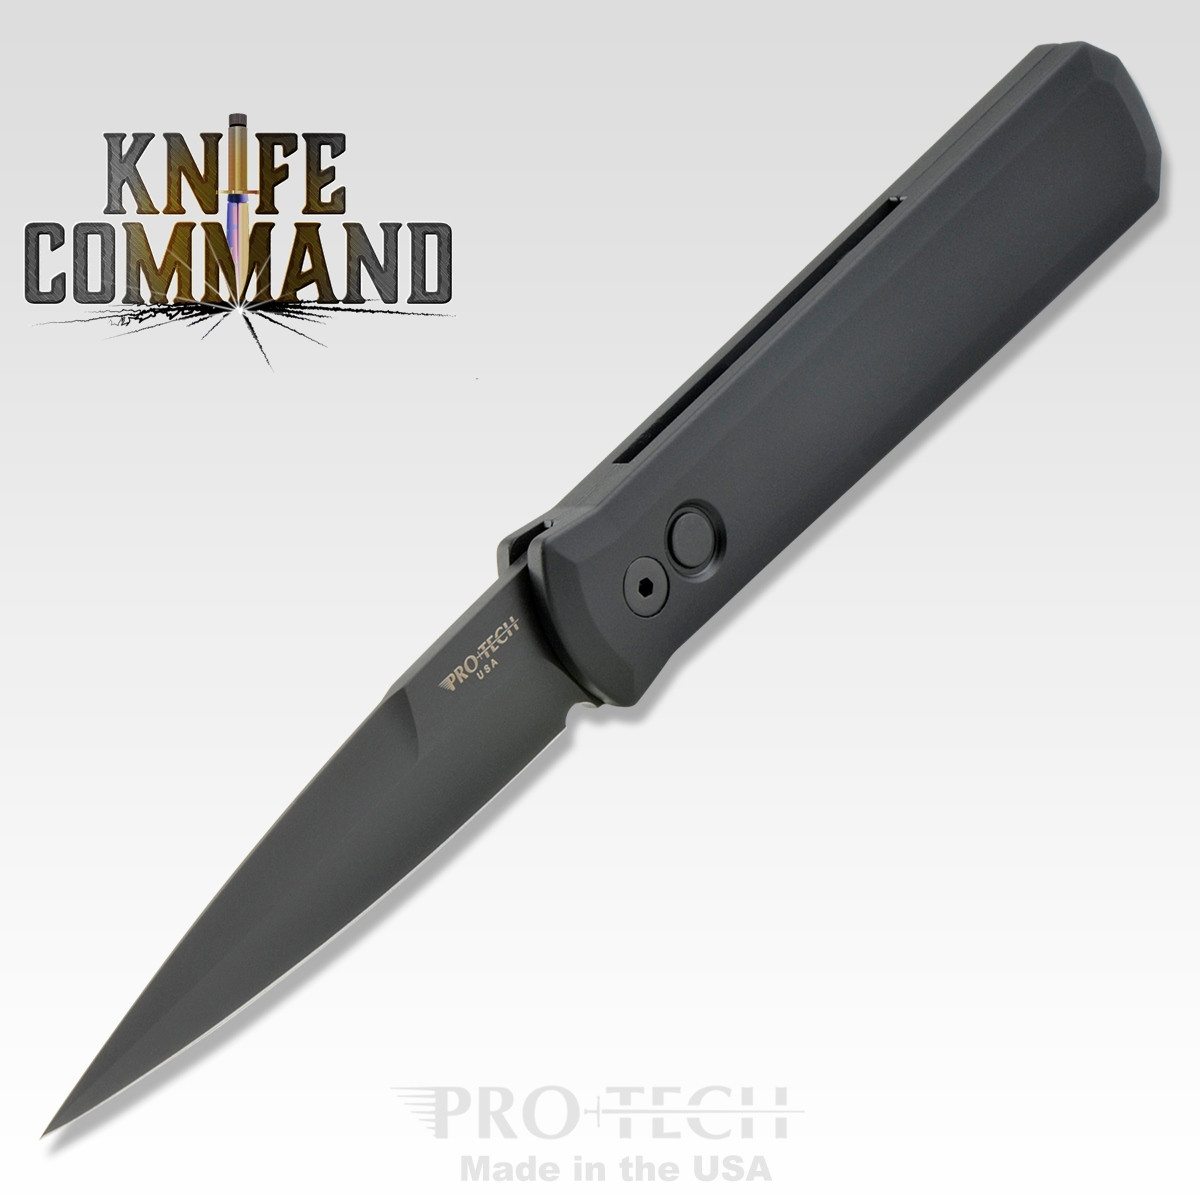 "Pro-Tech Knives Godfather 921-SWAT Automatic Knife Police Law Enforcement Folder 4"" Black DLC Blade"